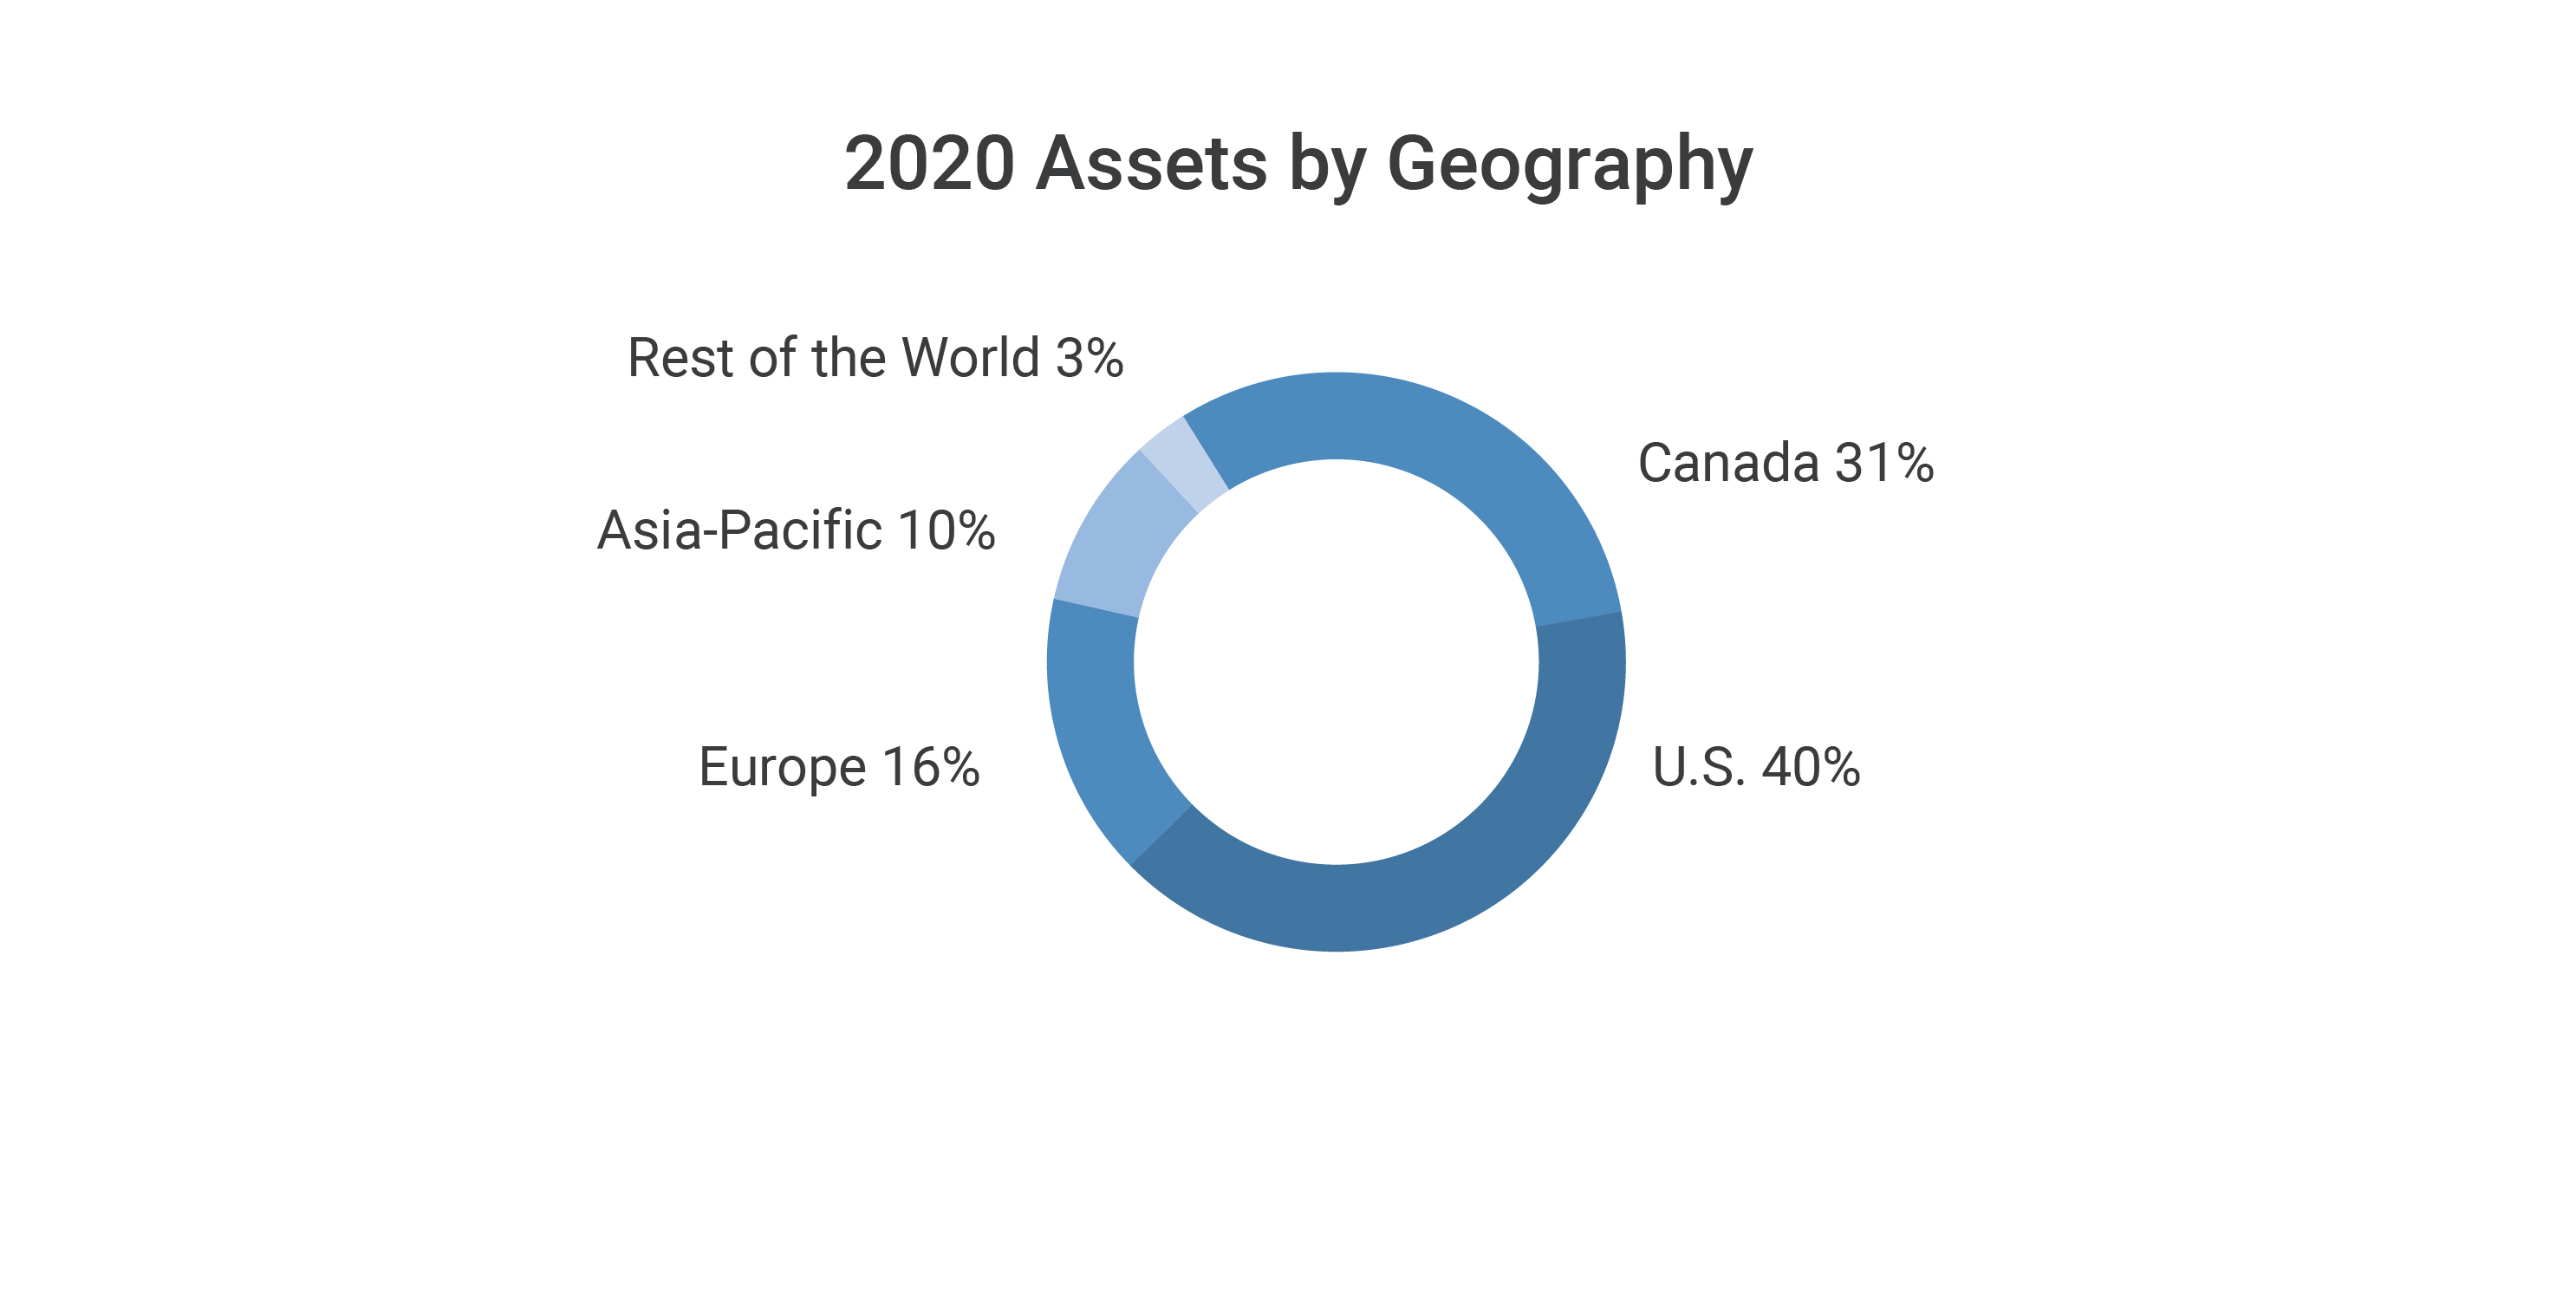 2020 Assets by Geography pie chart showing Canada 31%, U.S. 40%, Europe 16%, Asia-Pacific 10% and the rest of the world 3%.